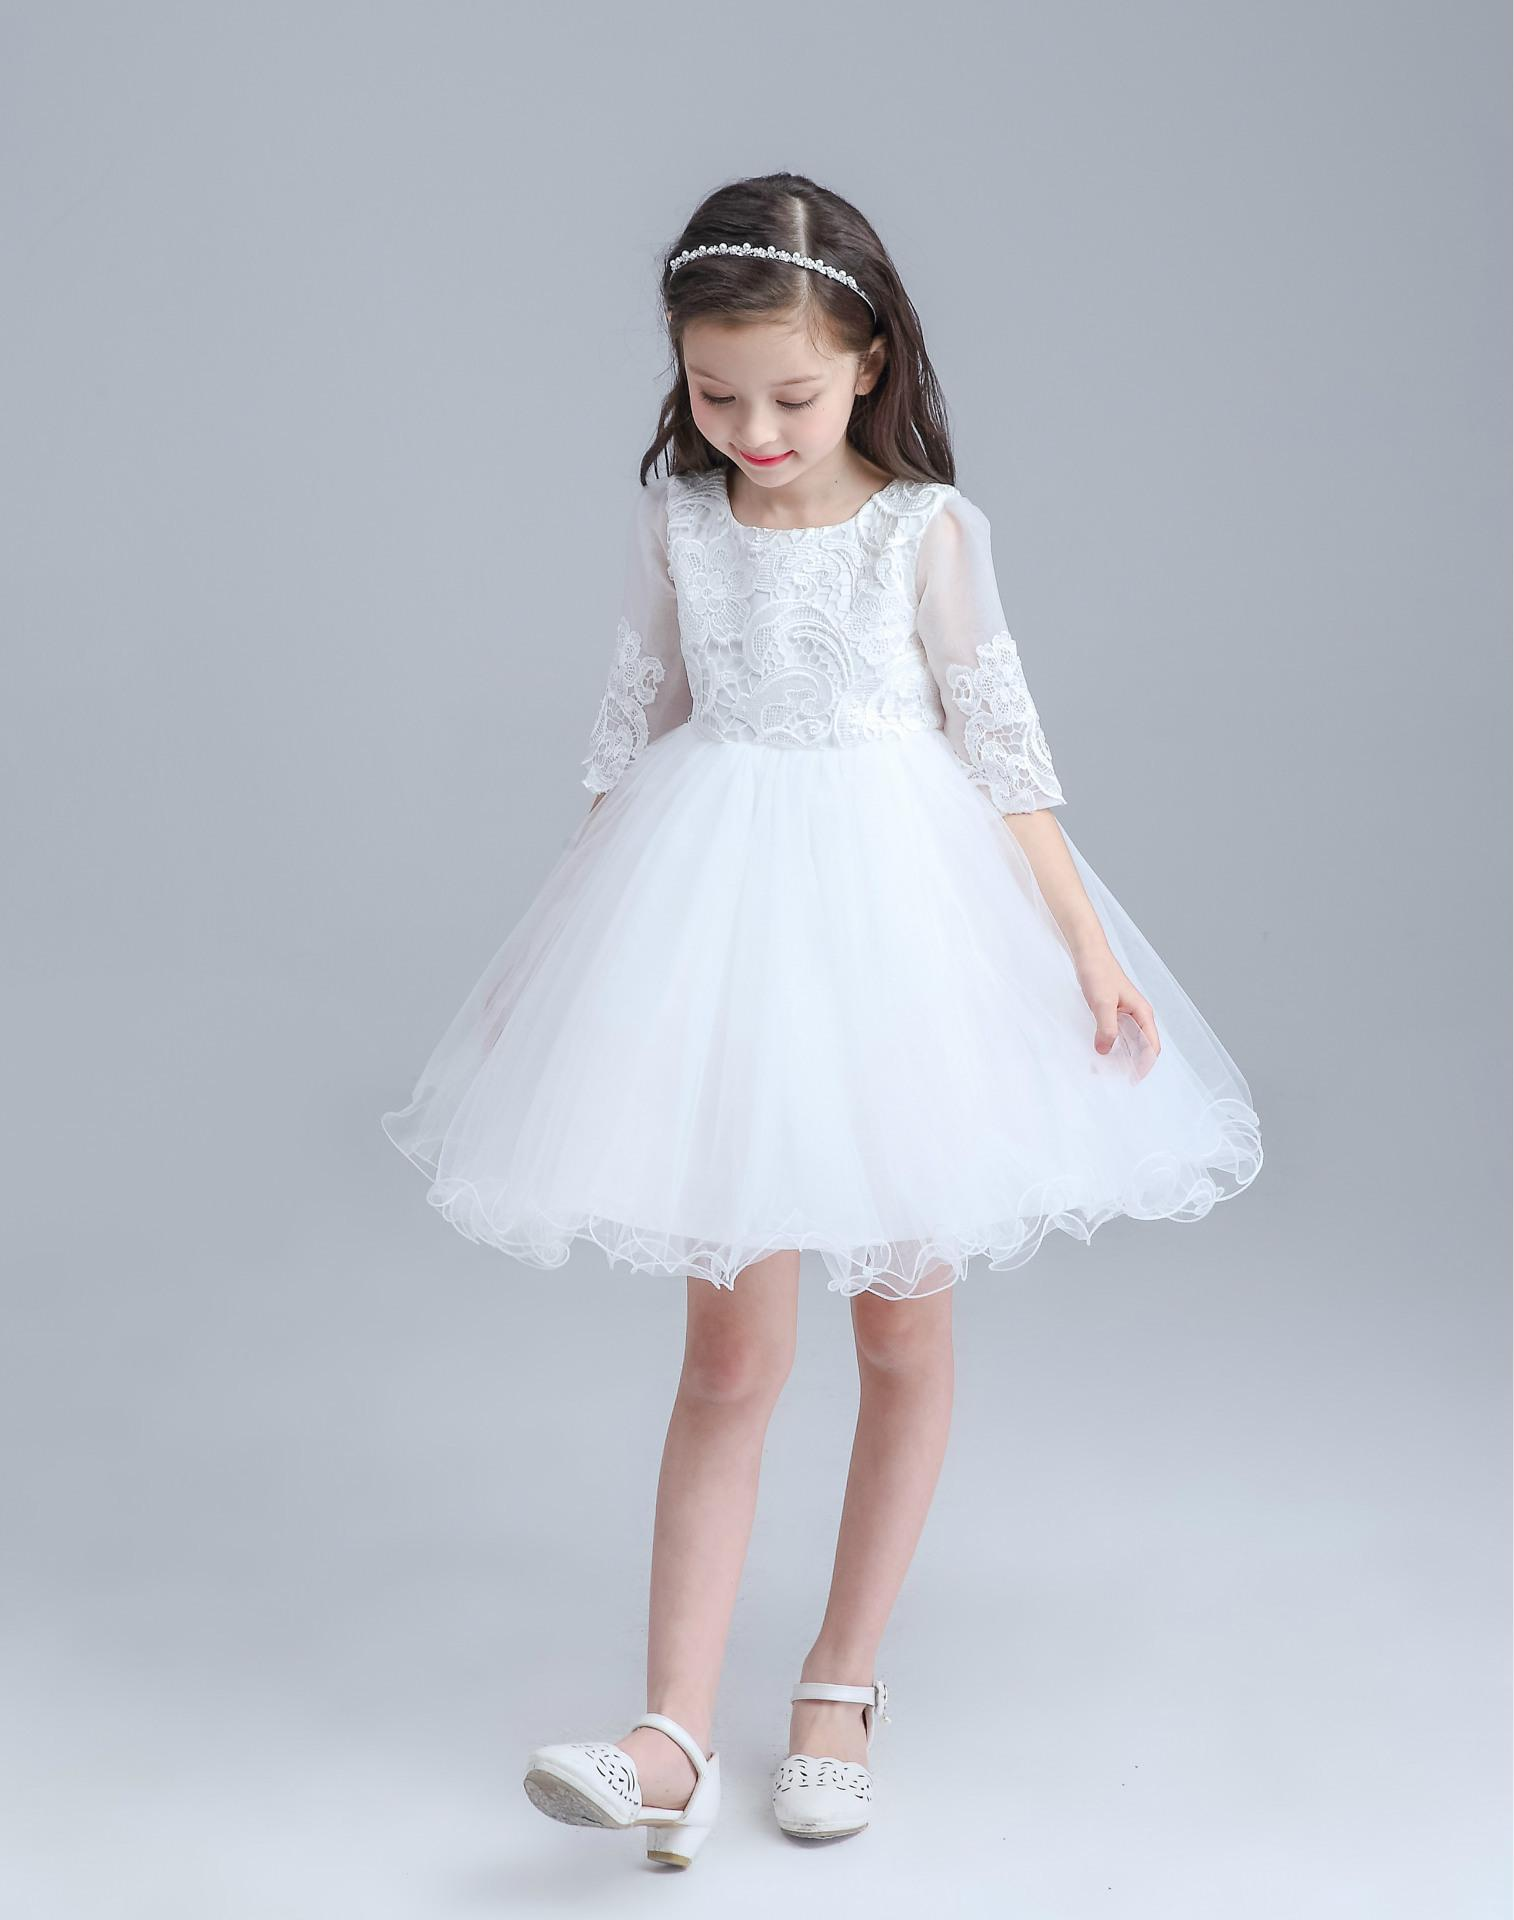 2017 Full Sleeve Lace Baby Clothes Baby Flower Girl Dresses For 0